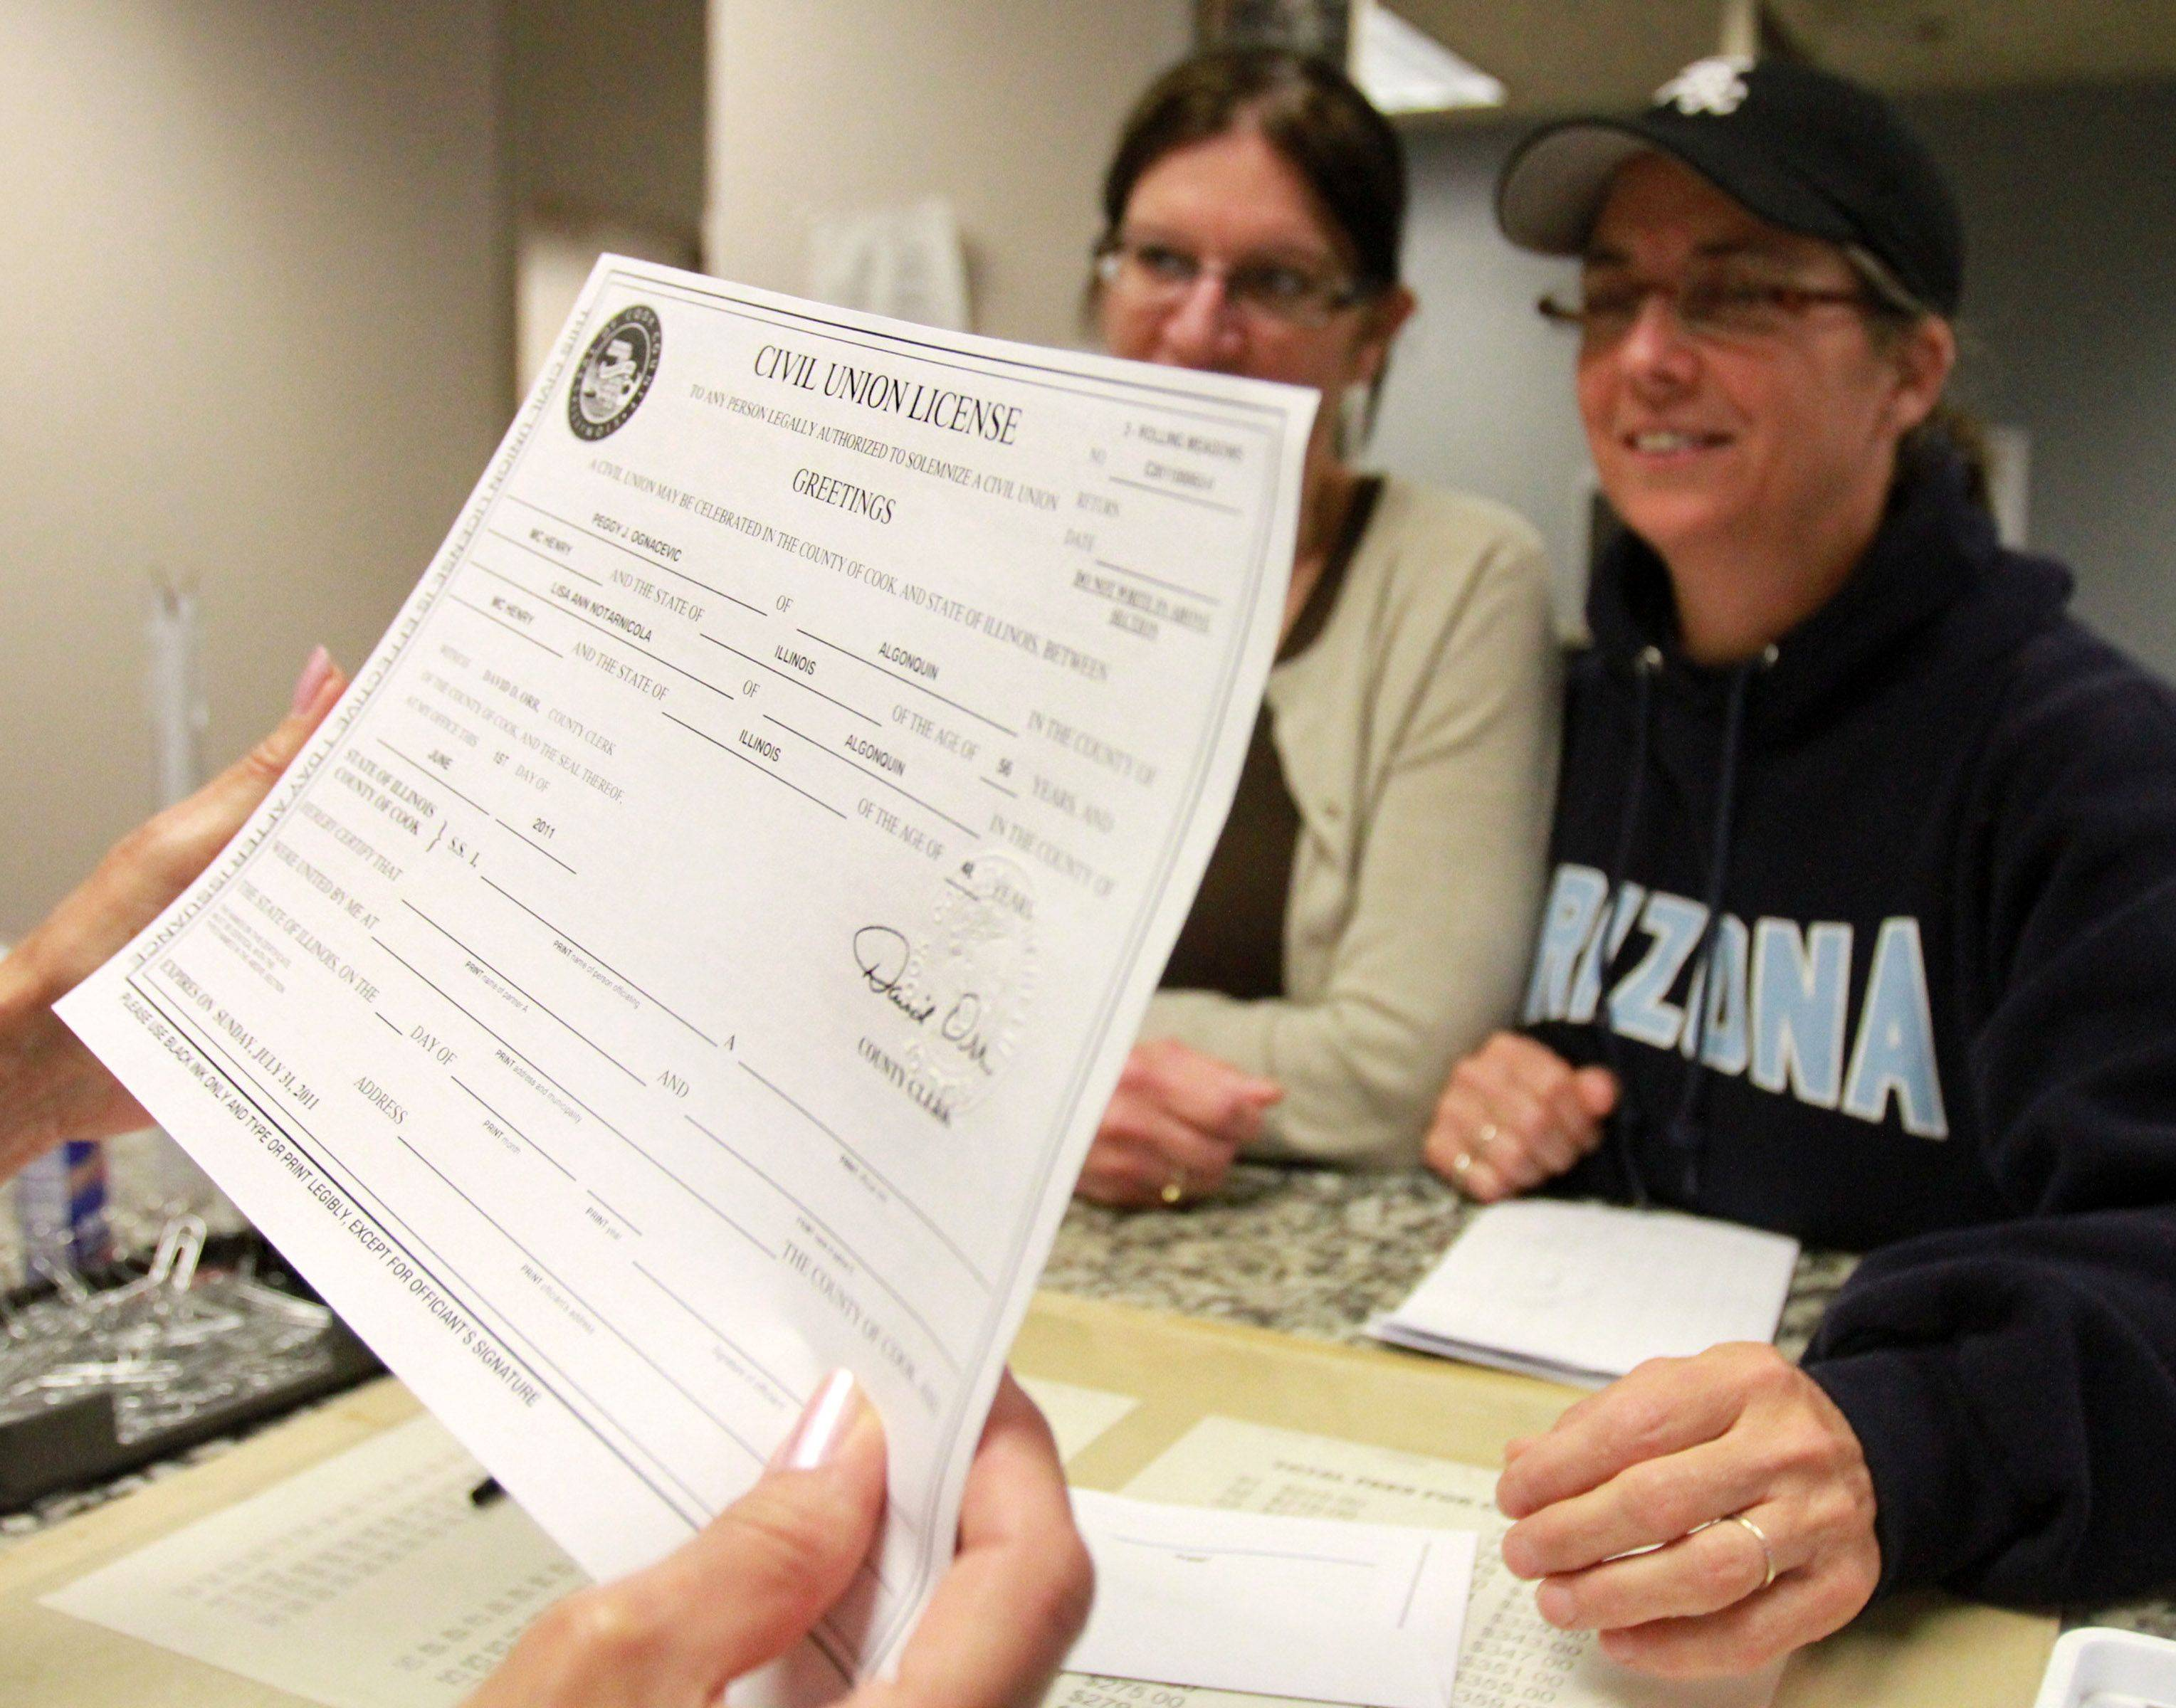 Images: Civil union licenses issued in the suburbs